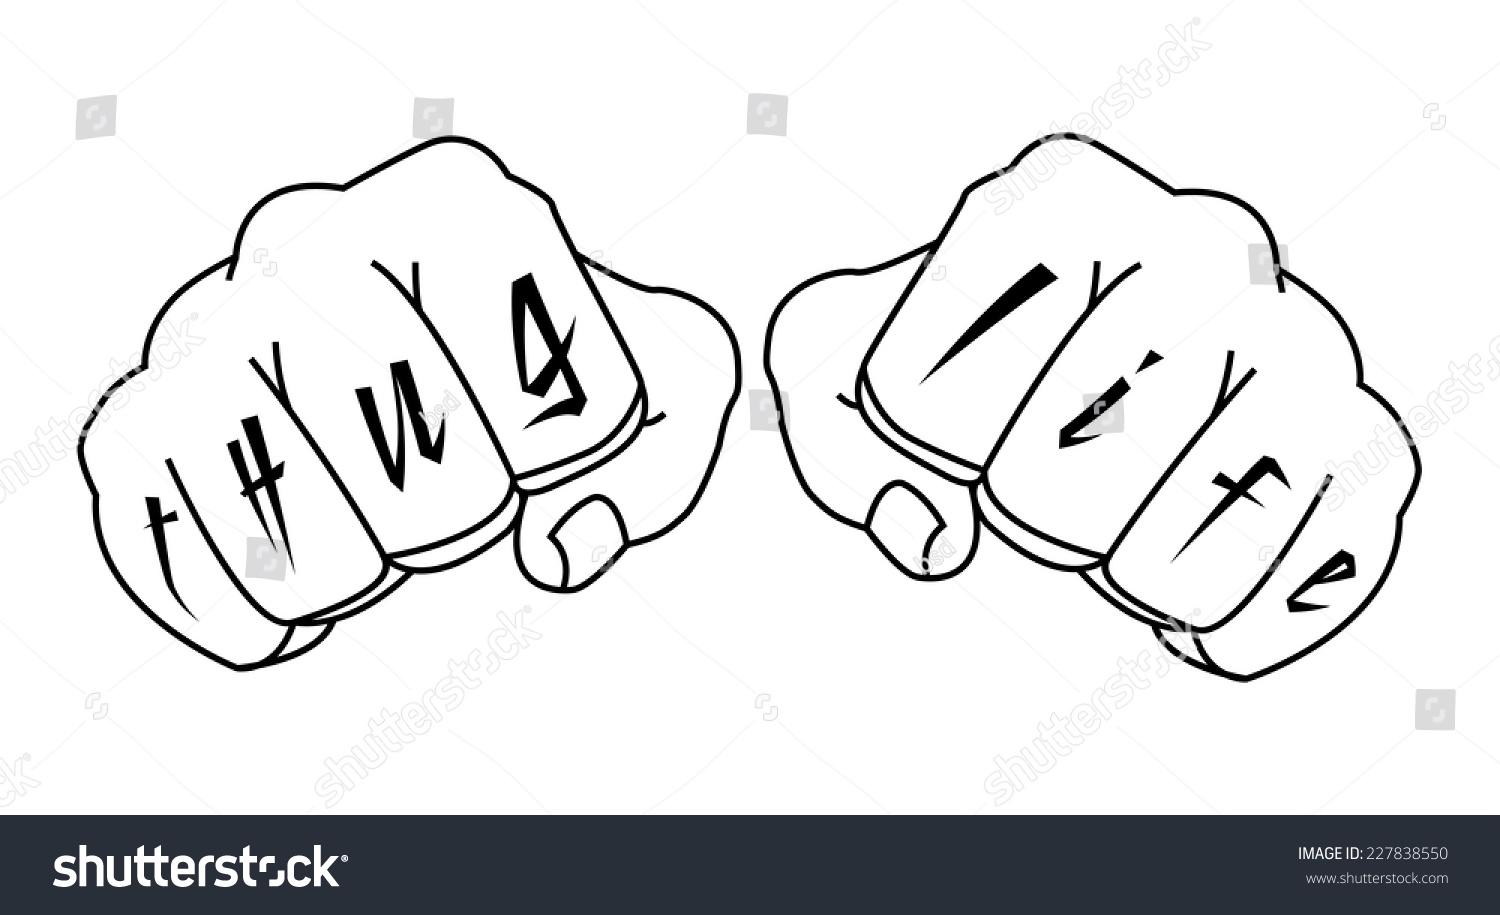 Gangster fists with thug life fingers tattoo man hands outlines vector illustration isolated on white